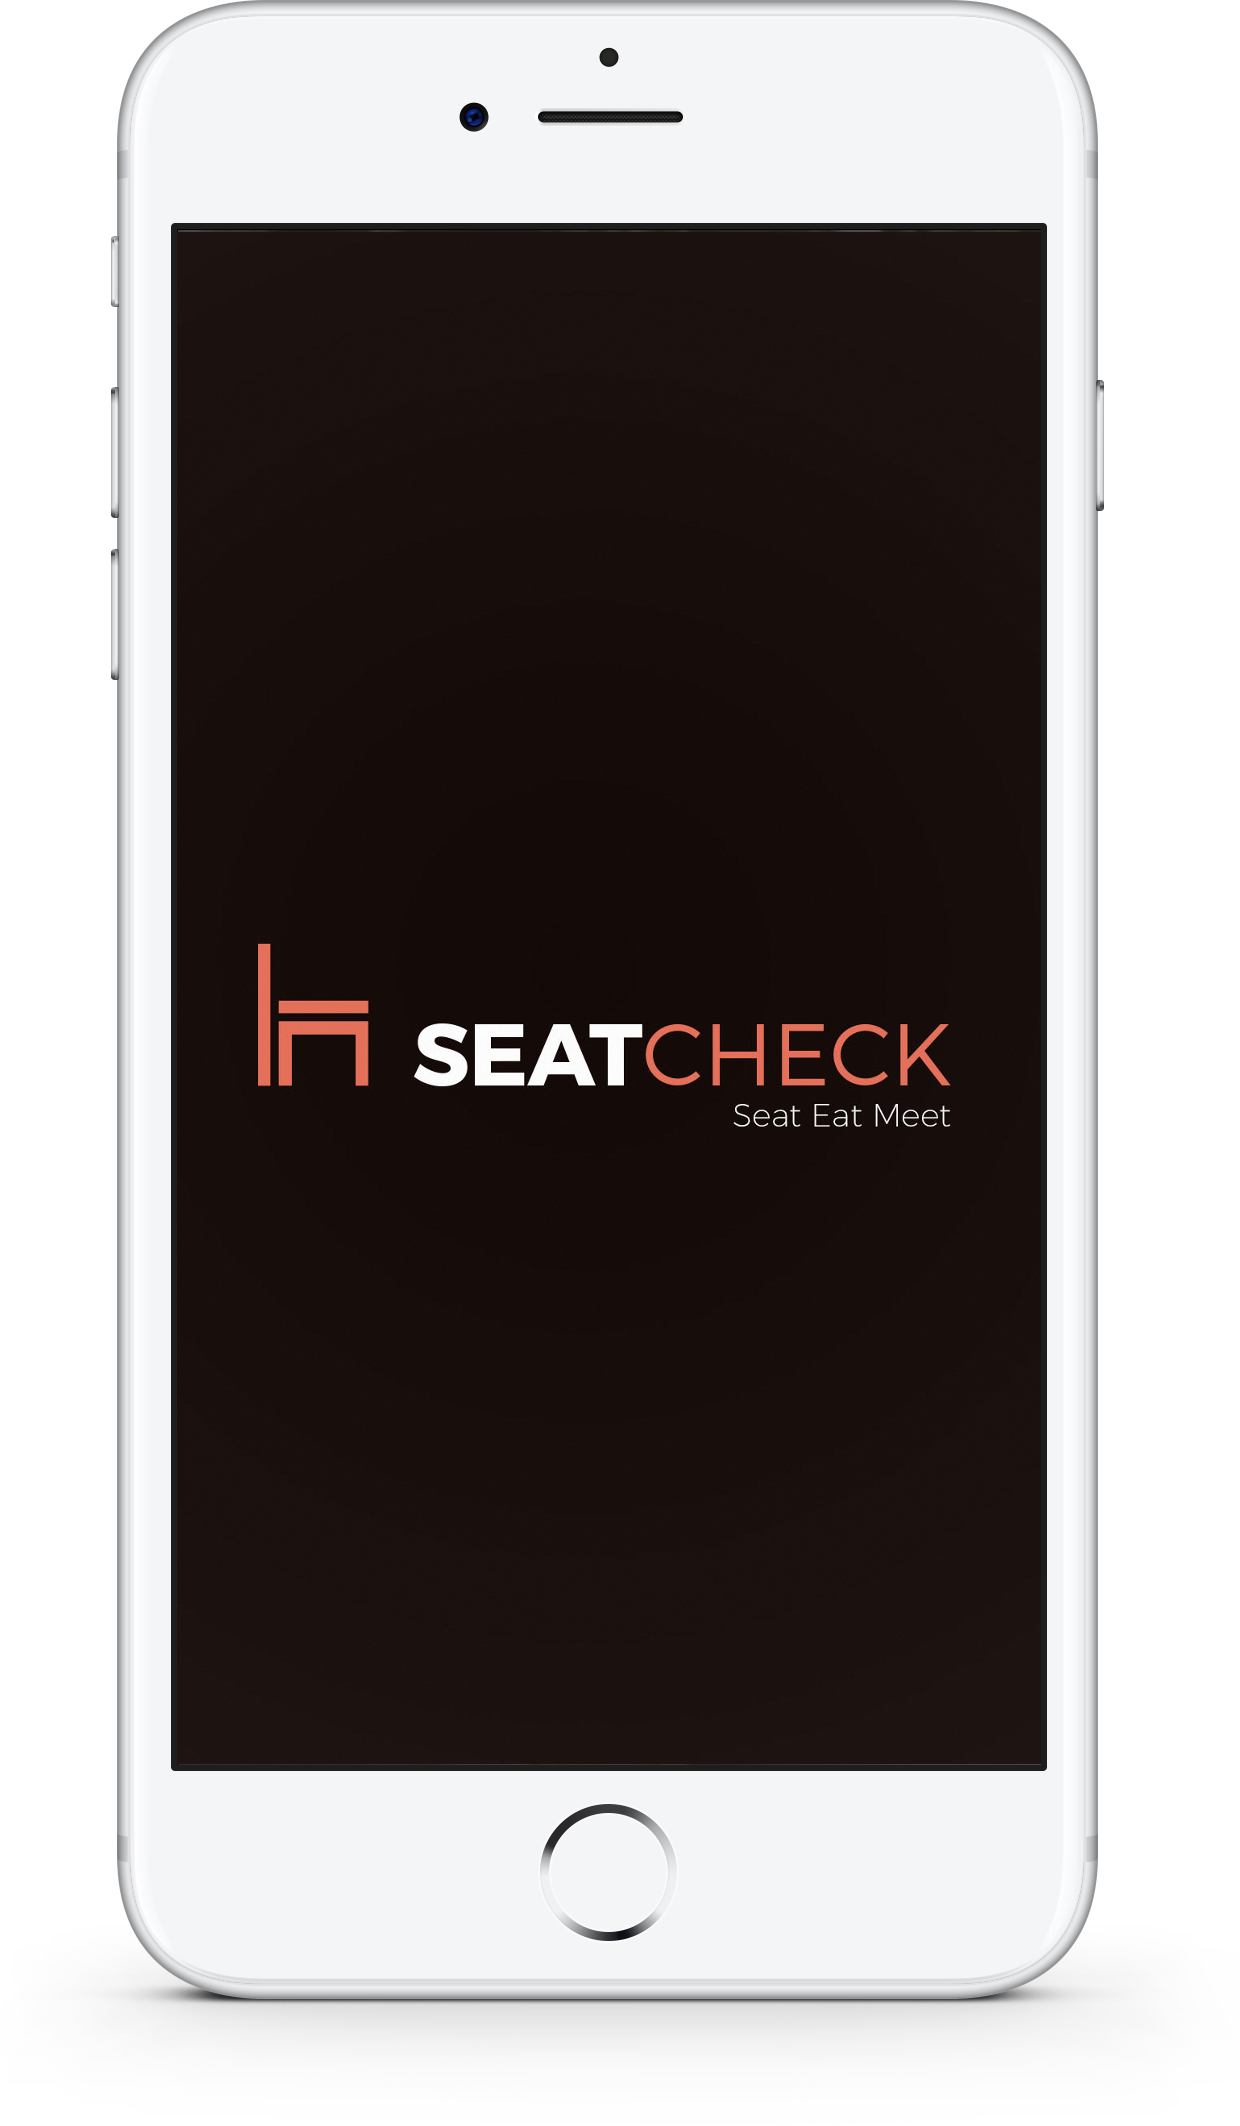 seatcheck launch screen